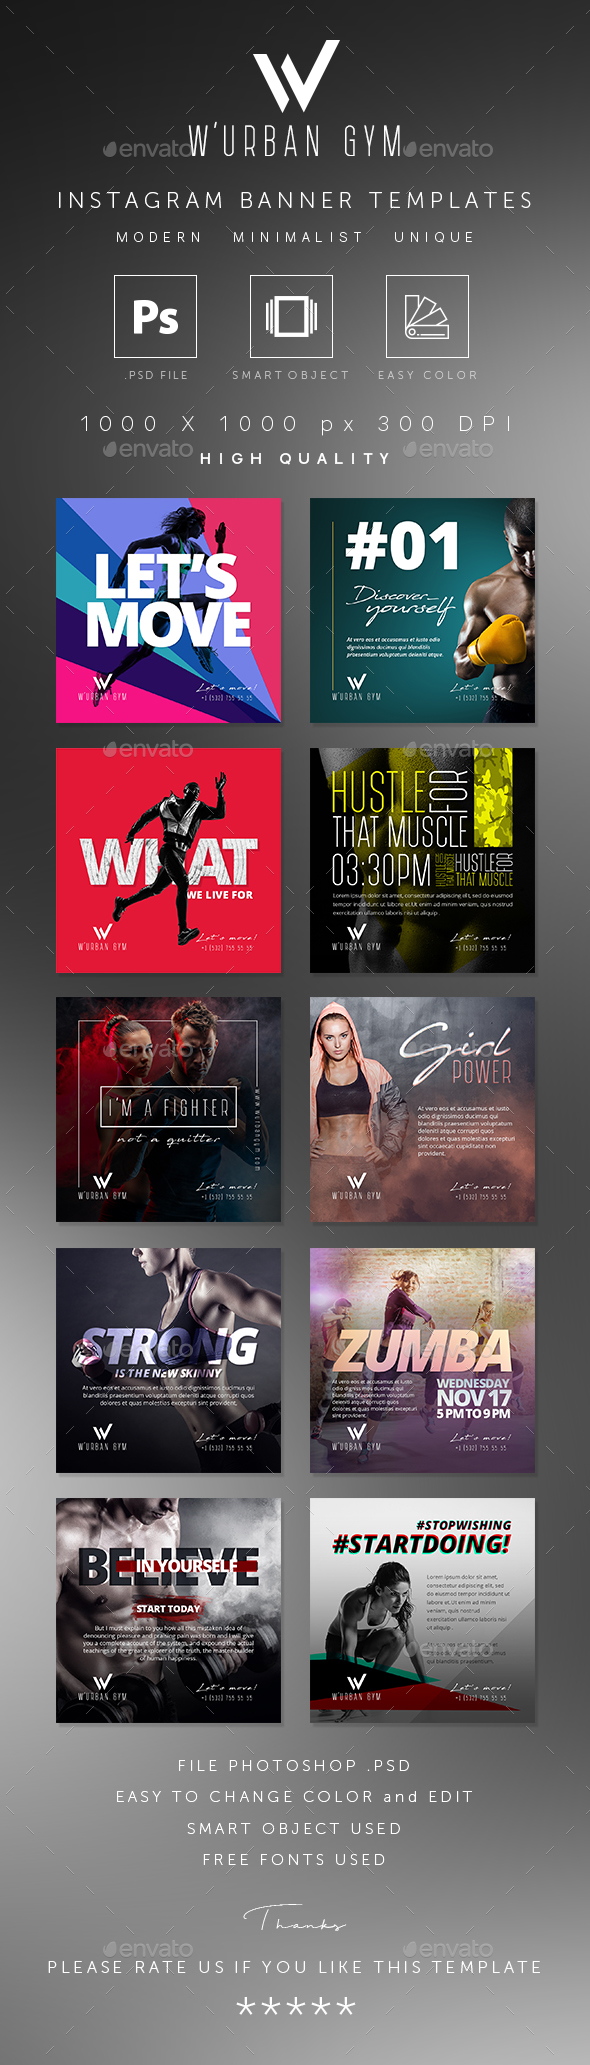 GraphicRiver Fitness GYM Instagram Banner Templates 20607355